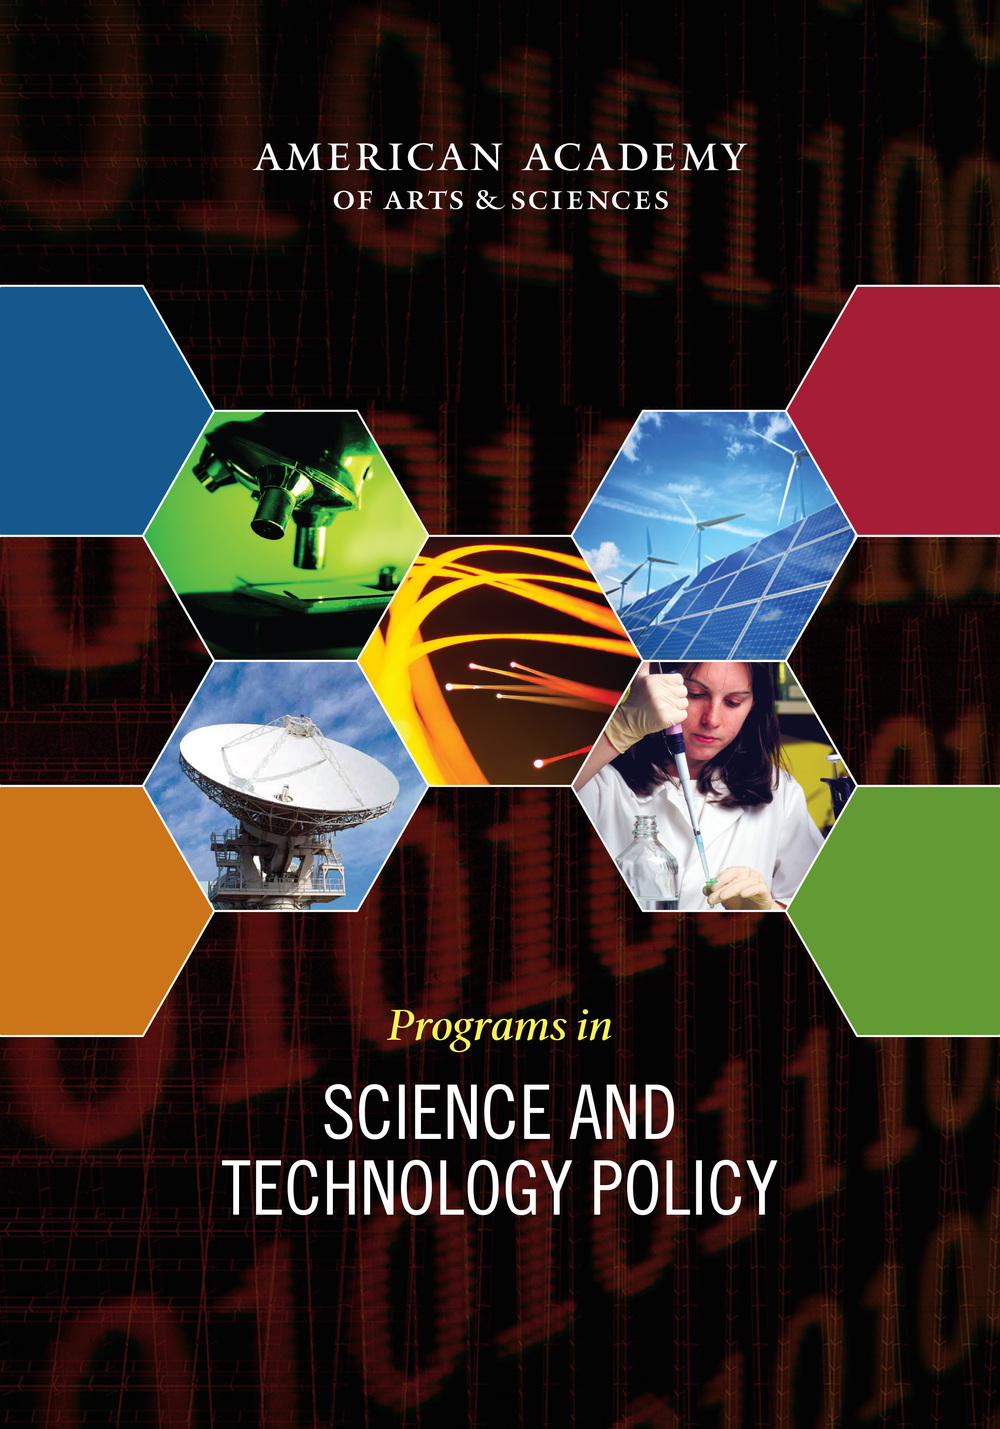 Programs in Science and Technology Policy